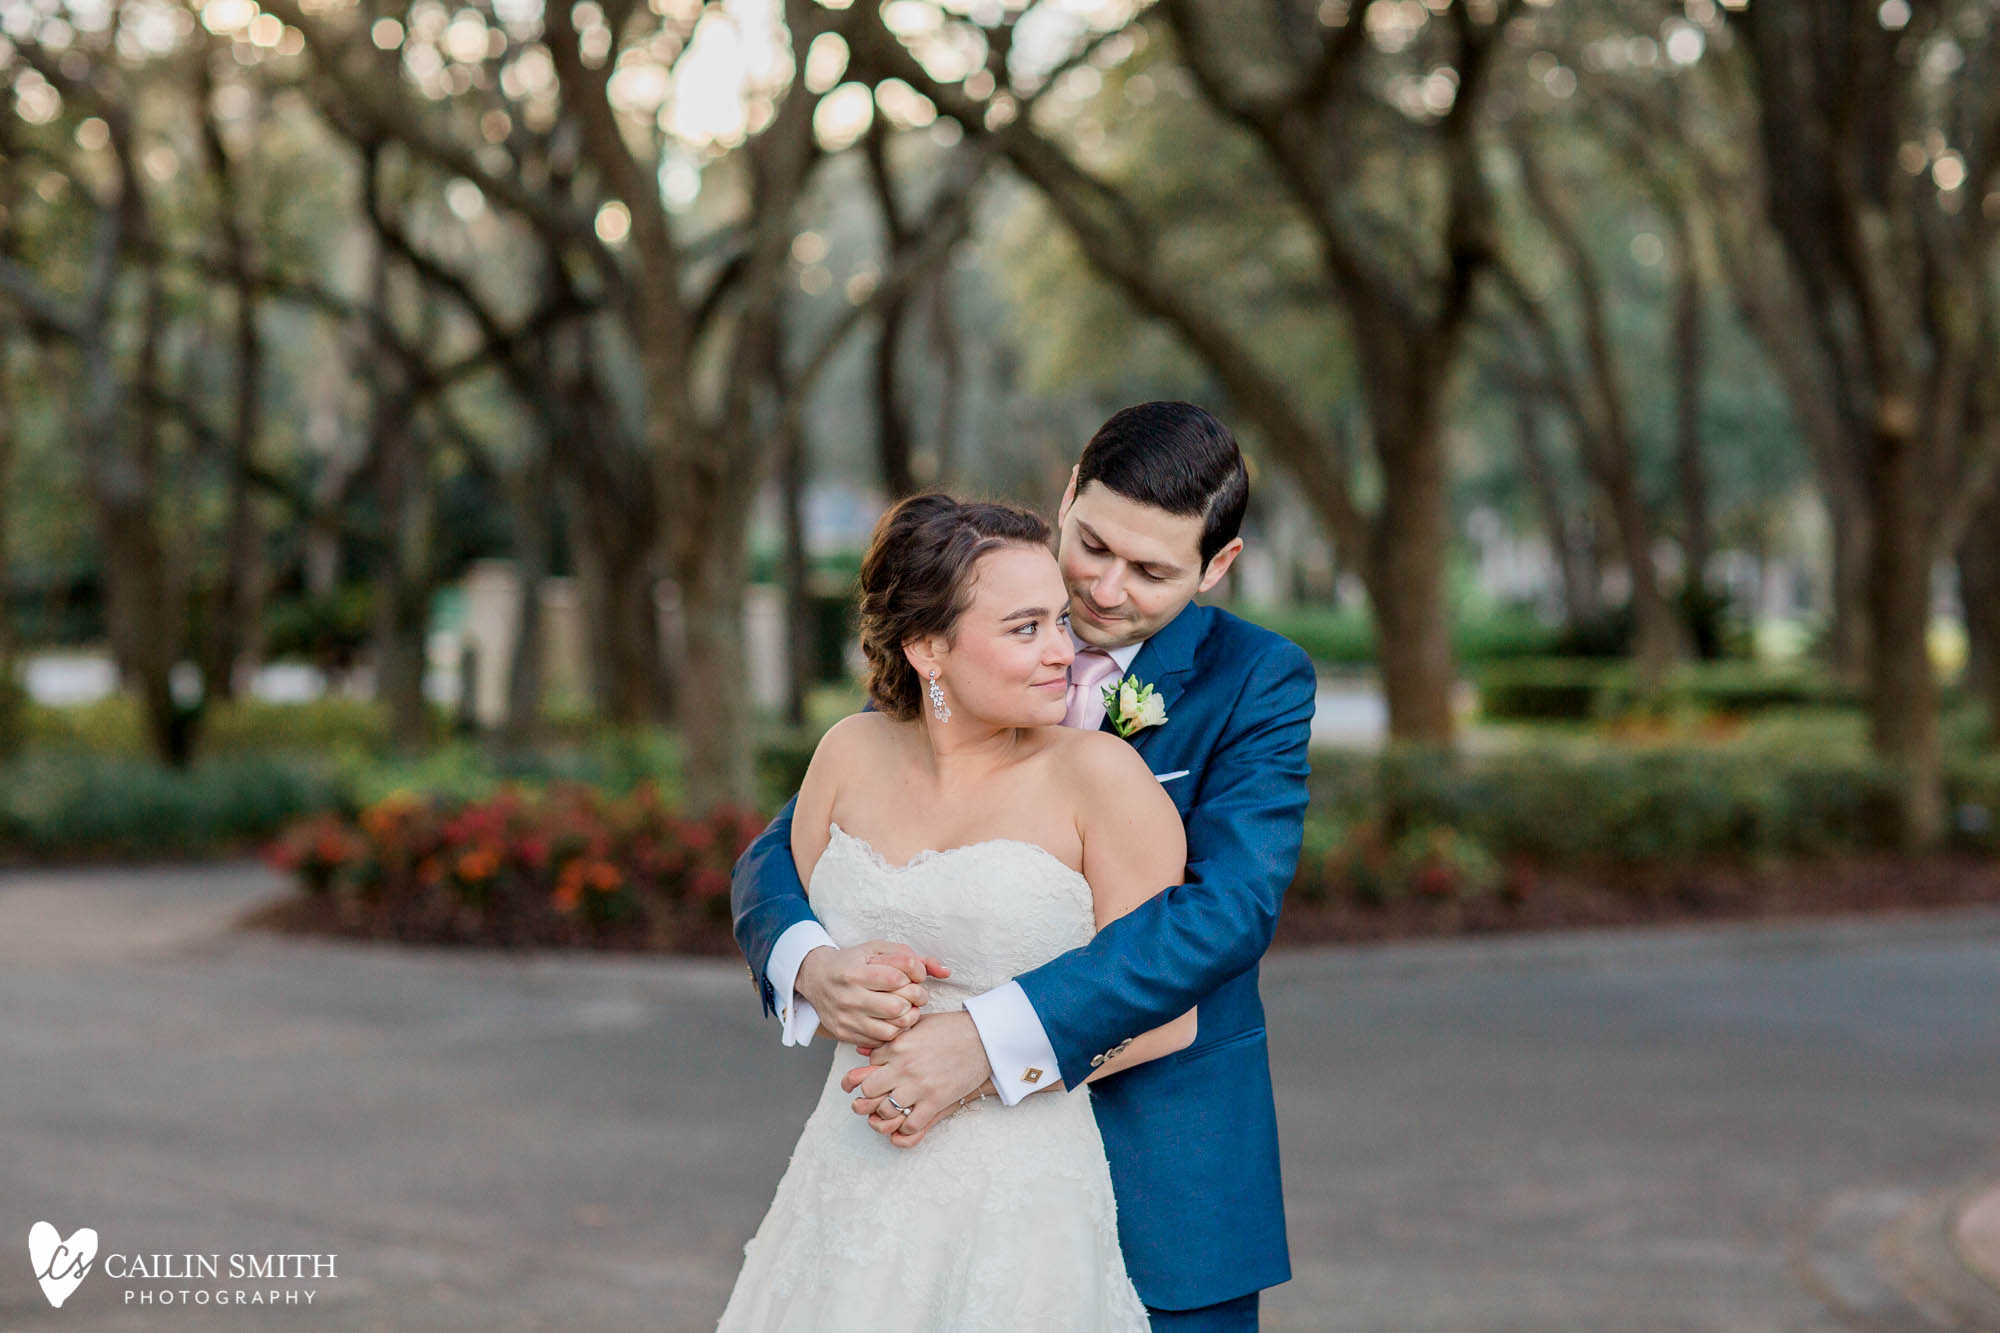 Hallie_Ari_Ritz_Carlton_Amelia_Island_Wedding_Photography_0051.jpg